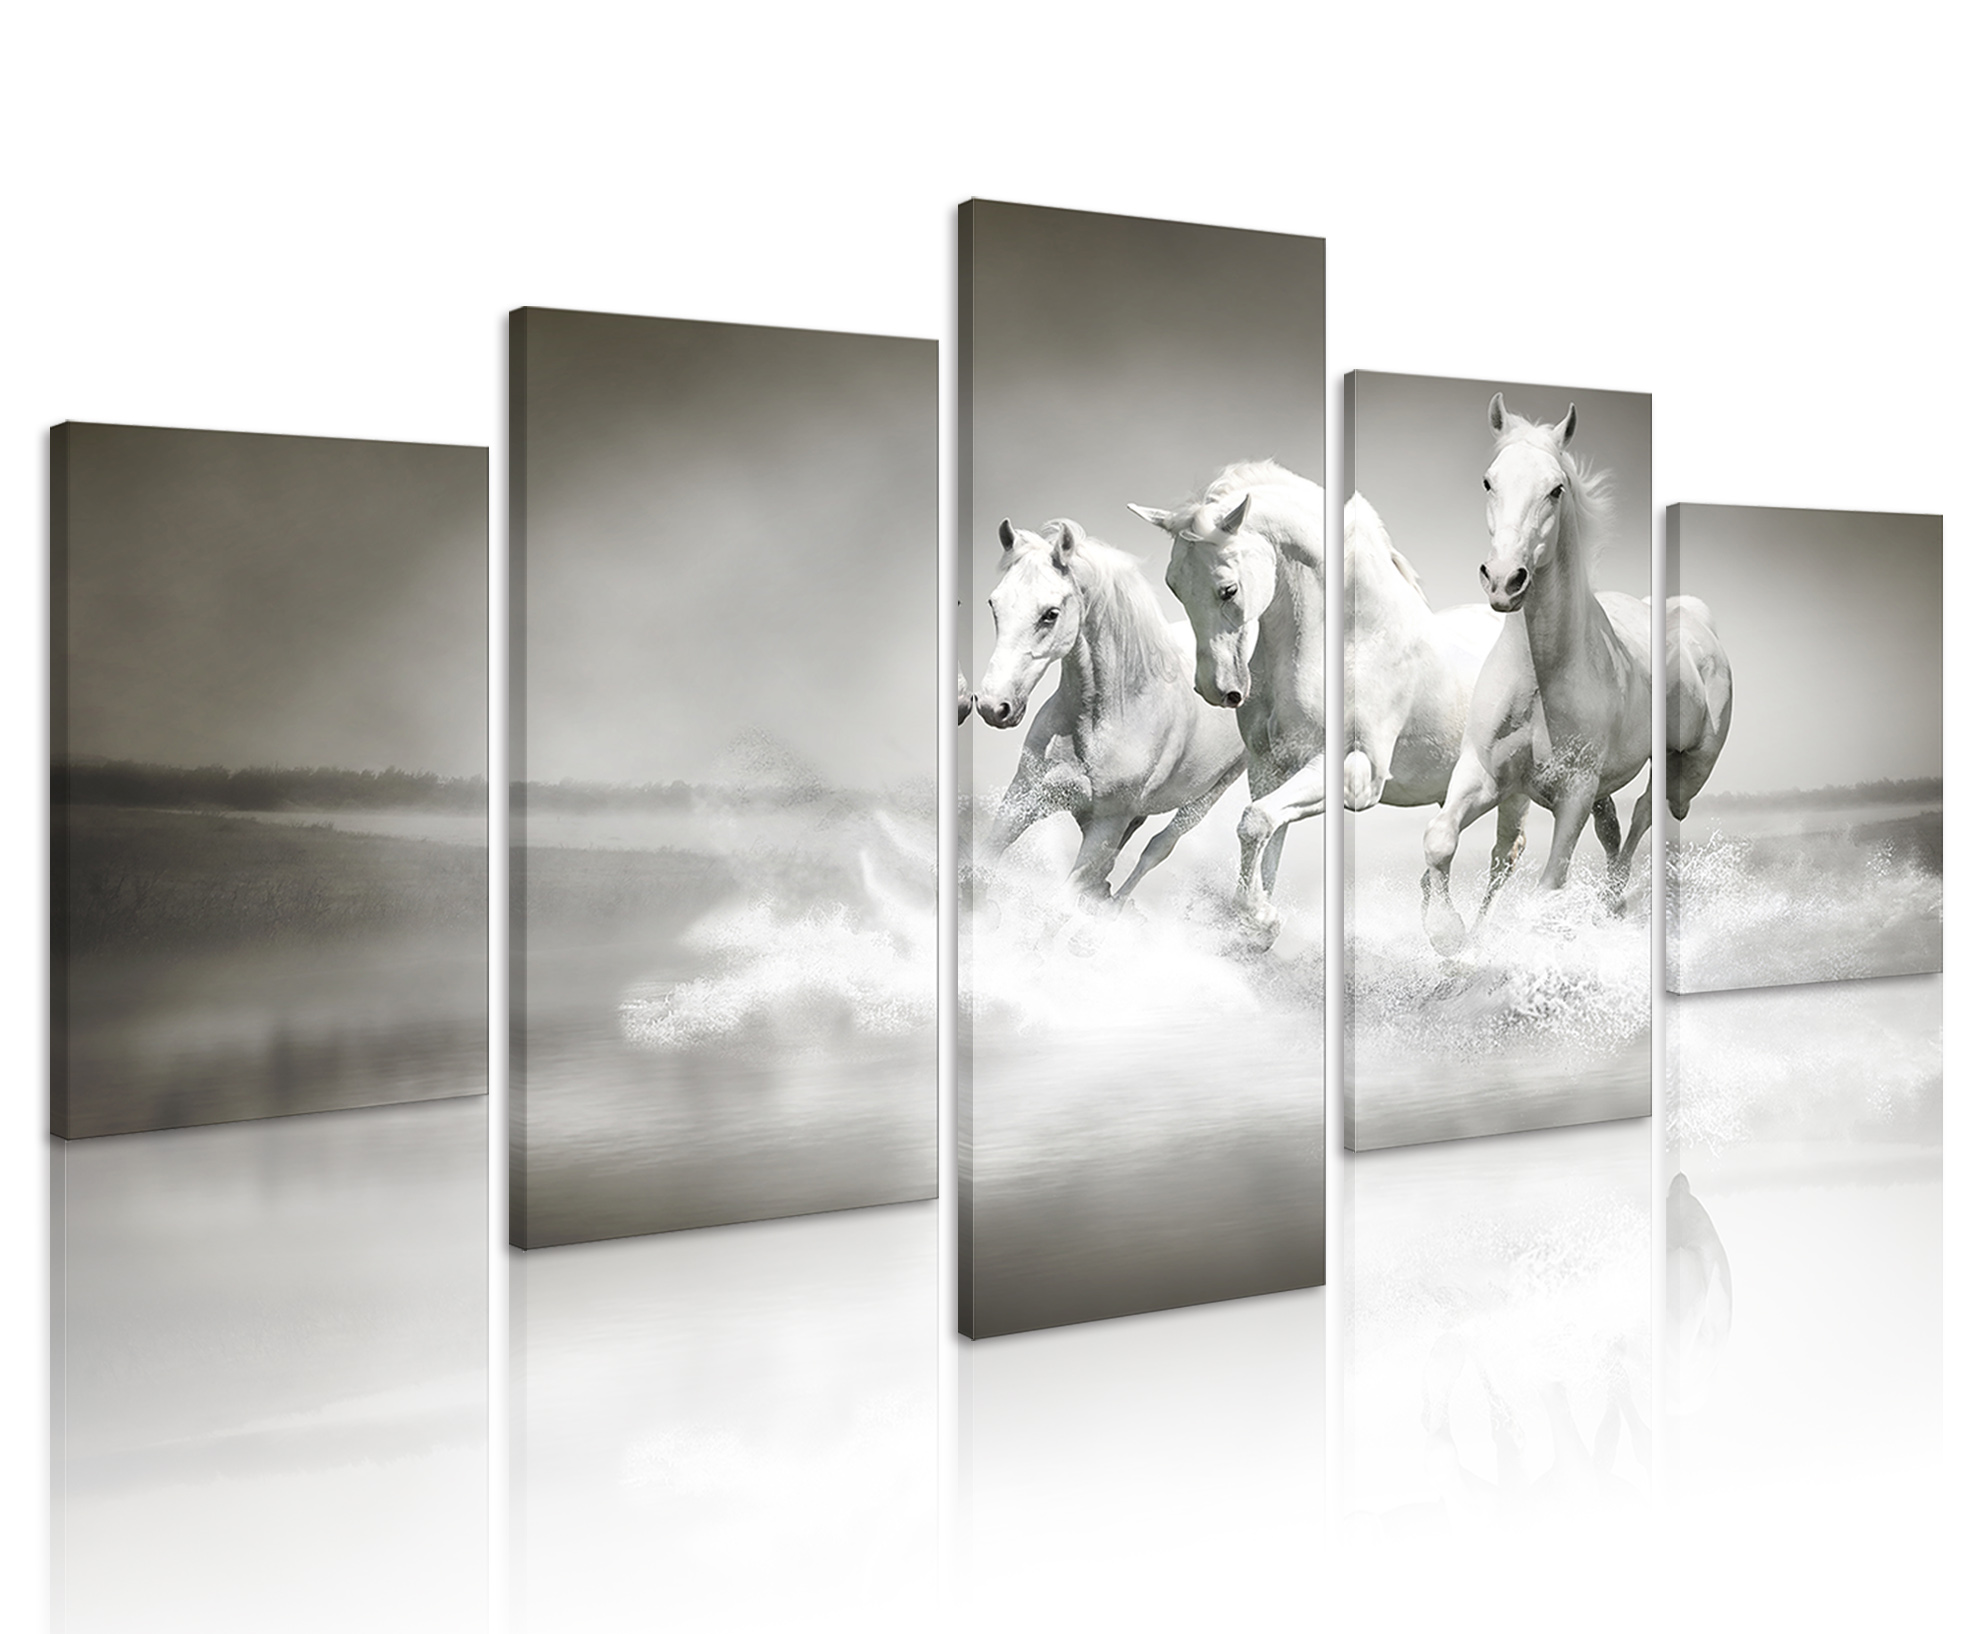 Wall Decoration 5 Panels White Horses Prints Art Animal Canvas <strong>Pictures</strong> with Wooden Frame